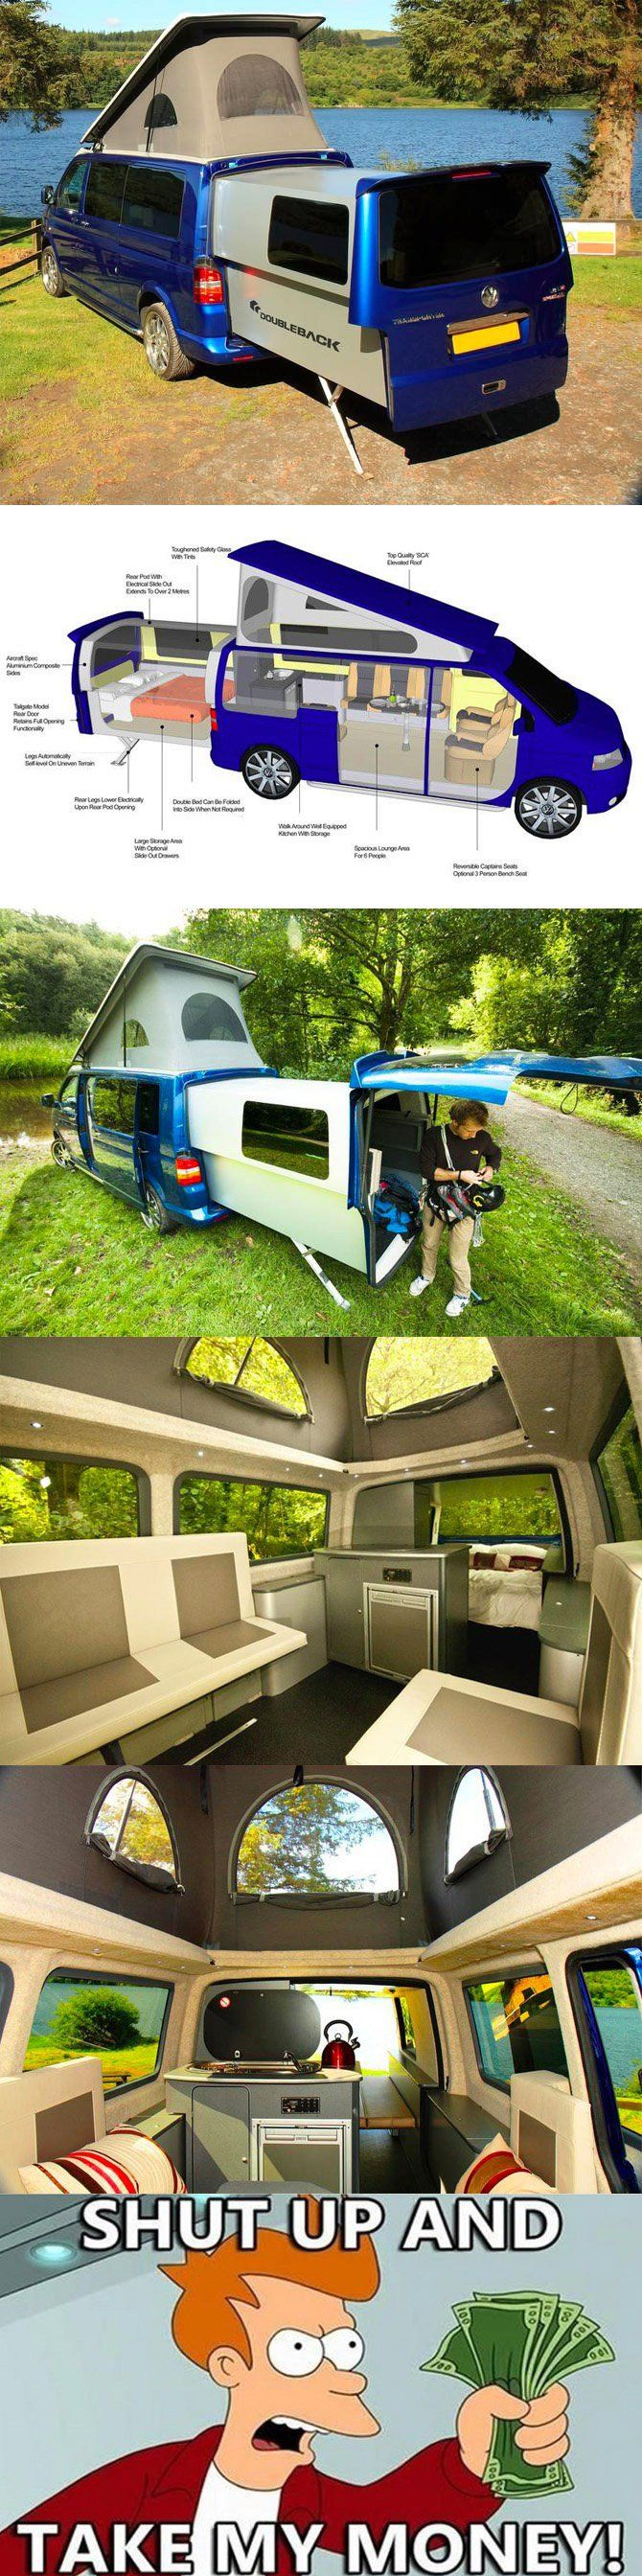 want.: The Roads, Camper Vans, Vw Campers Vans, Cars, Zombies Apocalyps, Road Trips, Camps, Travel, Roads Trips